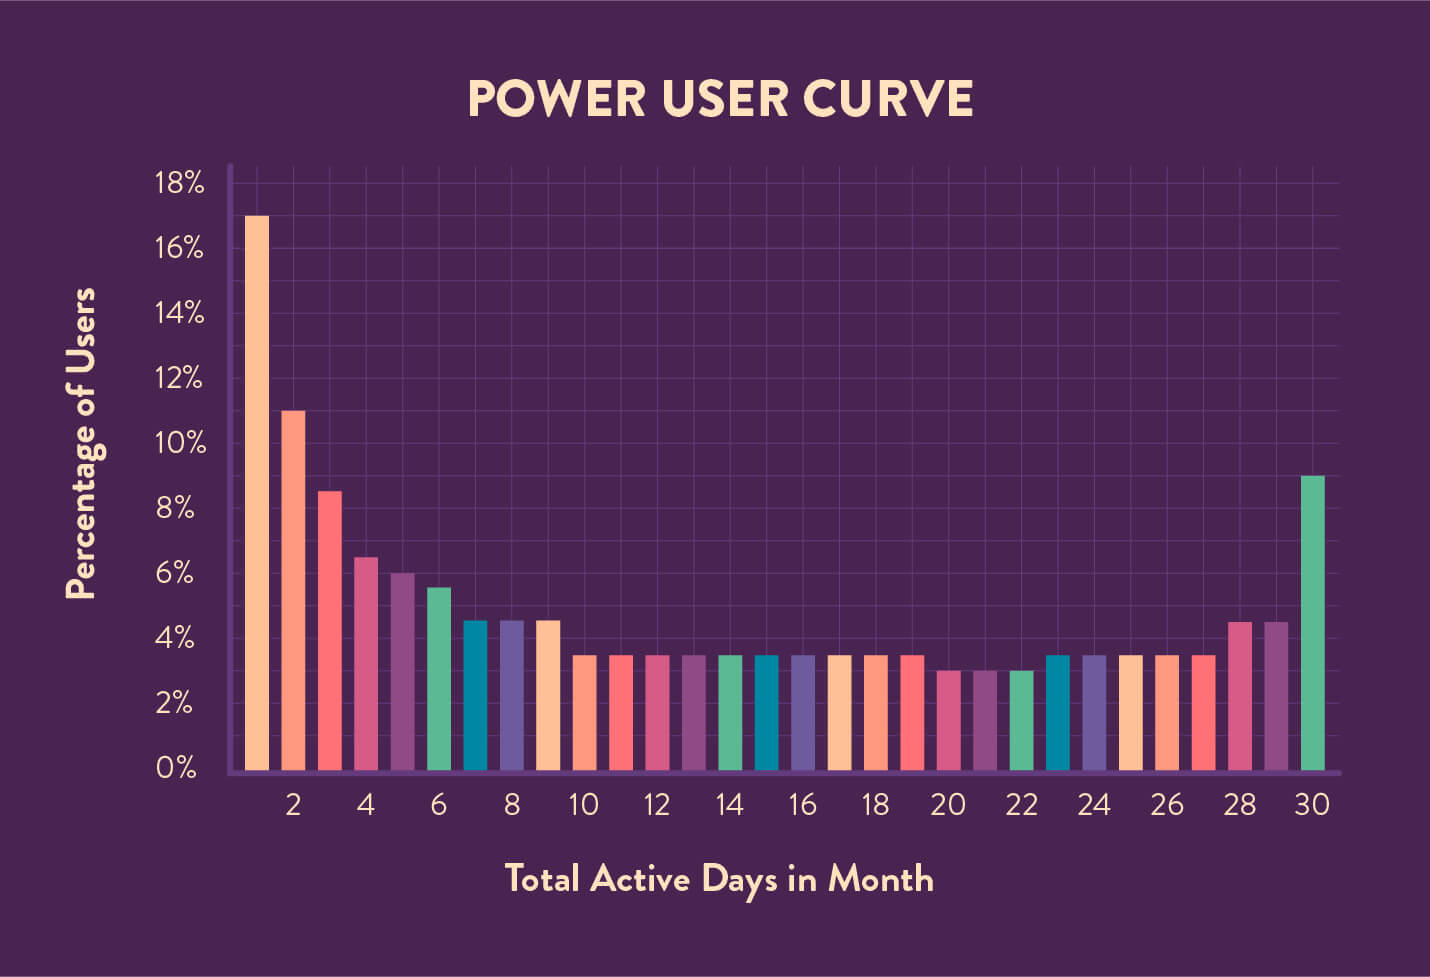 power user curve example chart of a 30 DAU/MAU